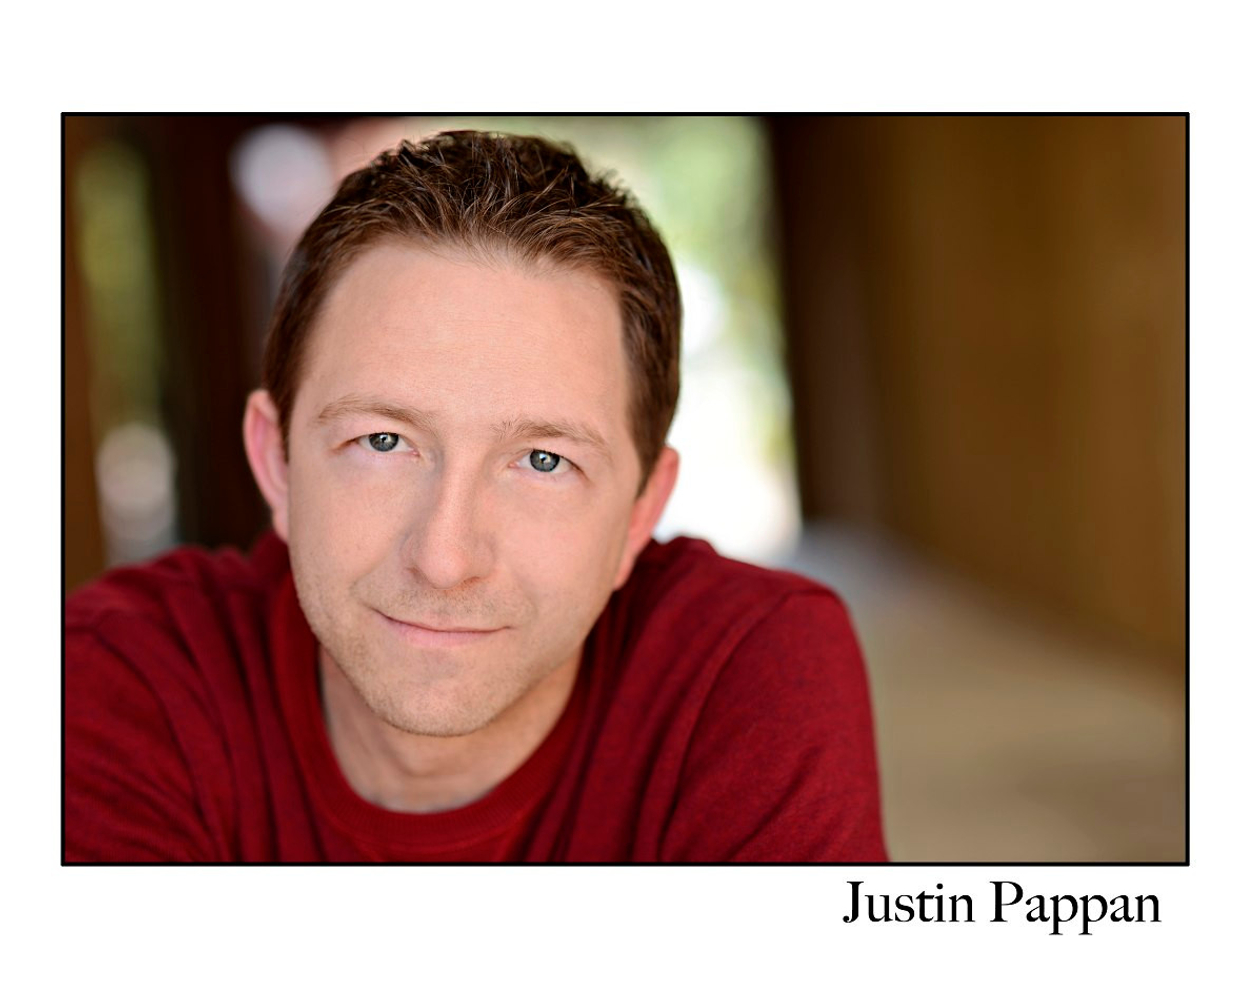 Justin Pappan represented by The Tabb Agency